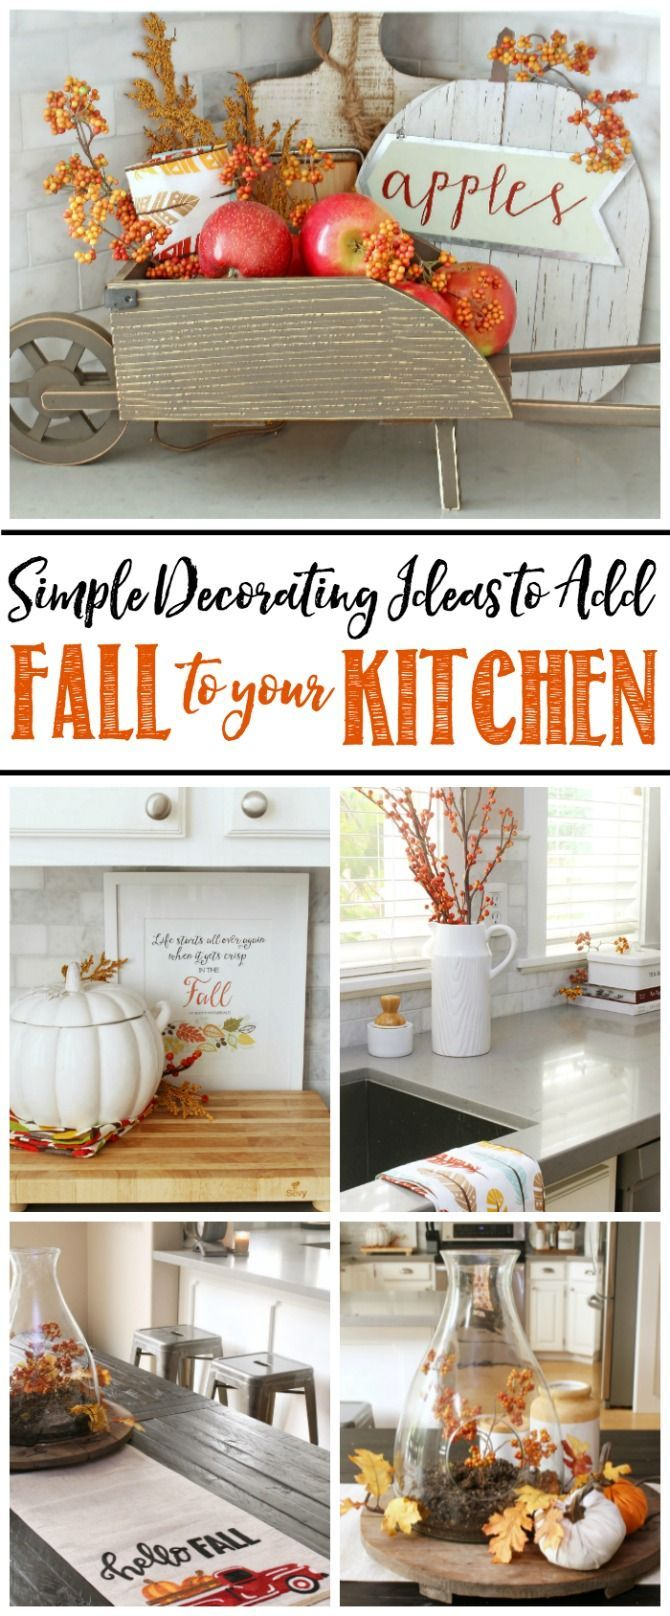 Fall Kitchen Decor Kitchener Triple Basket Deep Fryer Easy Decorating Ideas Thanksgiving Pinterest Simple Ways To Add Some Your